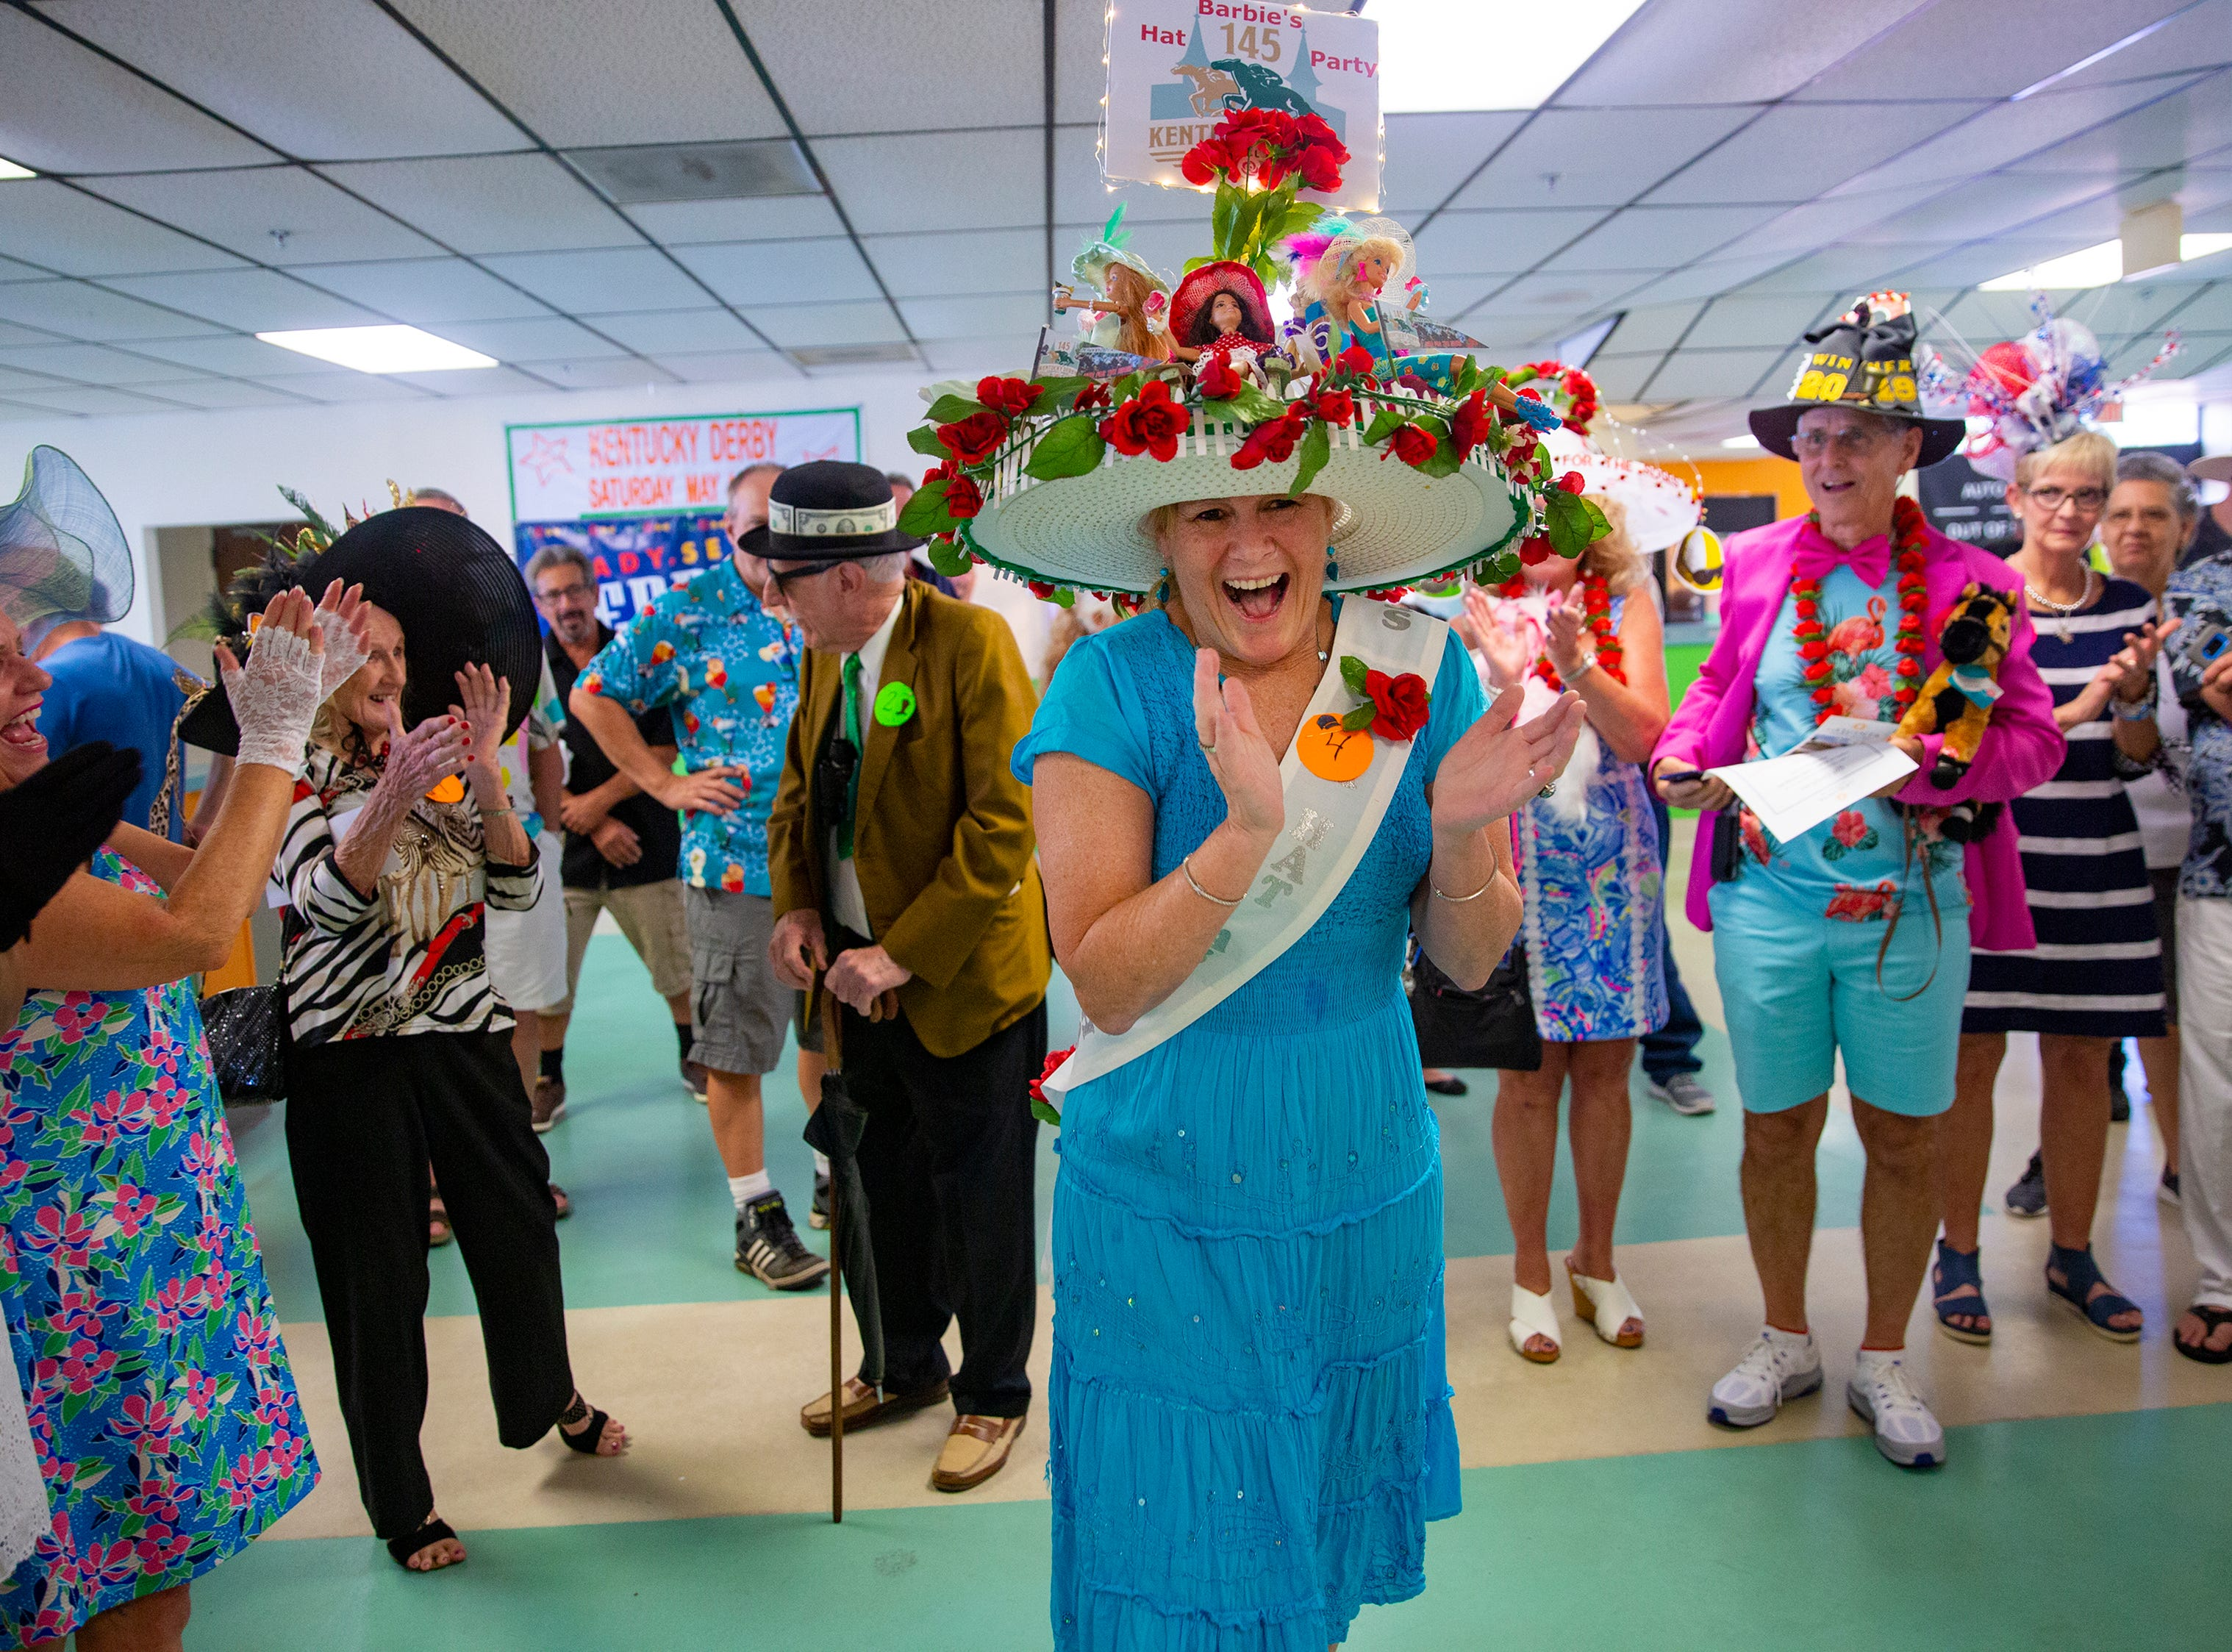 Sandy Gross reacts after winning the annual Best Derby Hat competition, Saturday, May 4, 2019, at Naples Fort Myers Greyhound Racing and Poker in Bonita Springs.